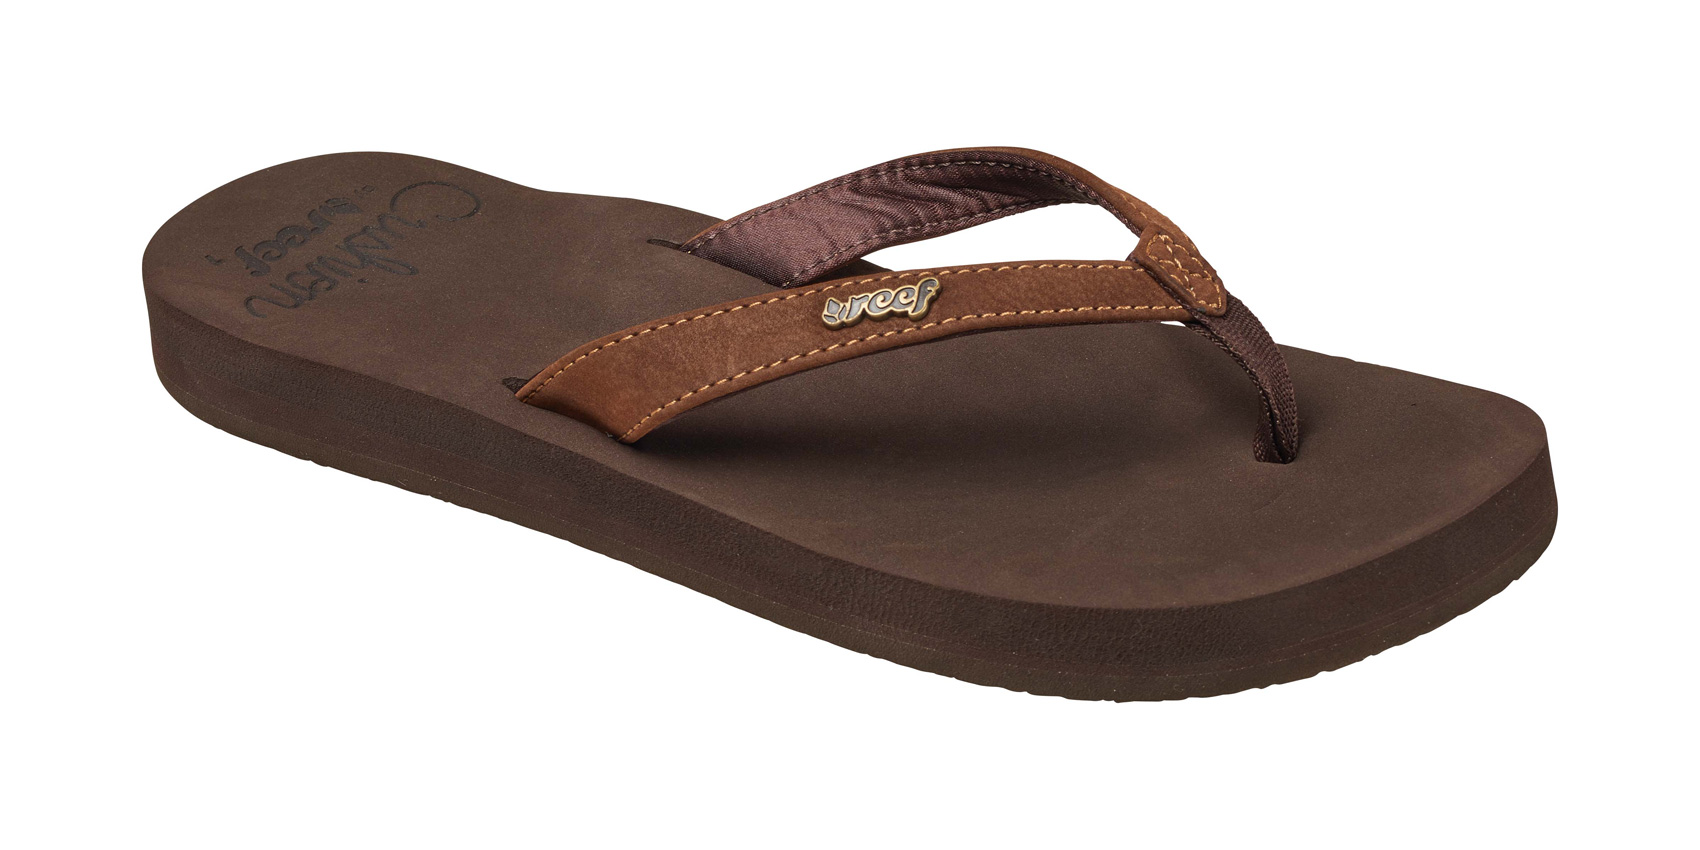 4a64ca9b3a5e62 Reef Womens Cushion Luna Flip Flops 2017 Brown